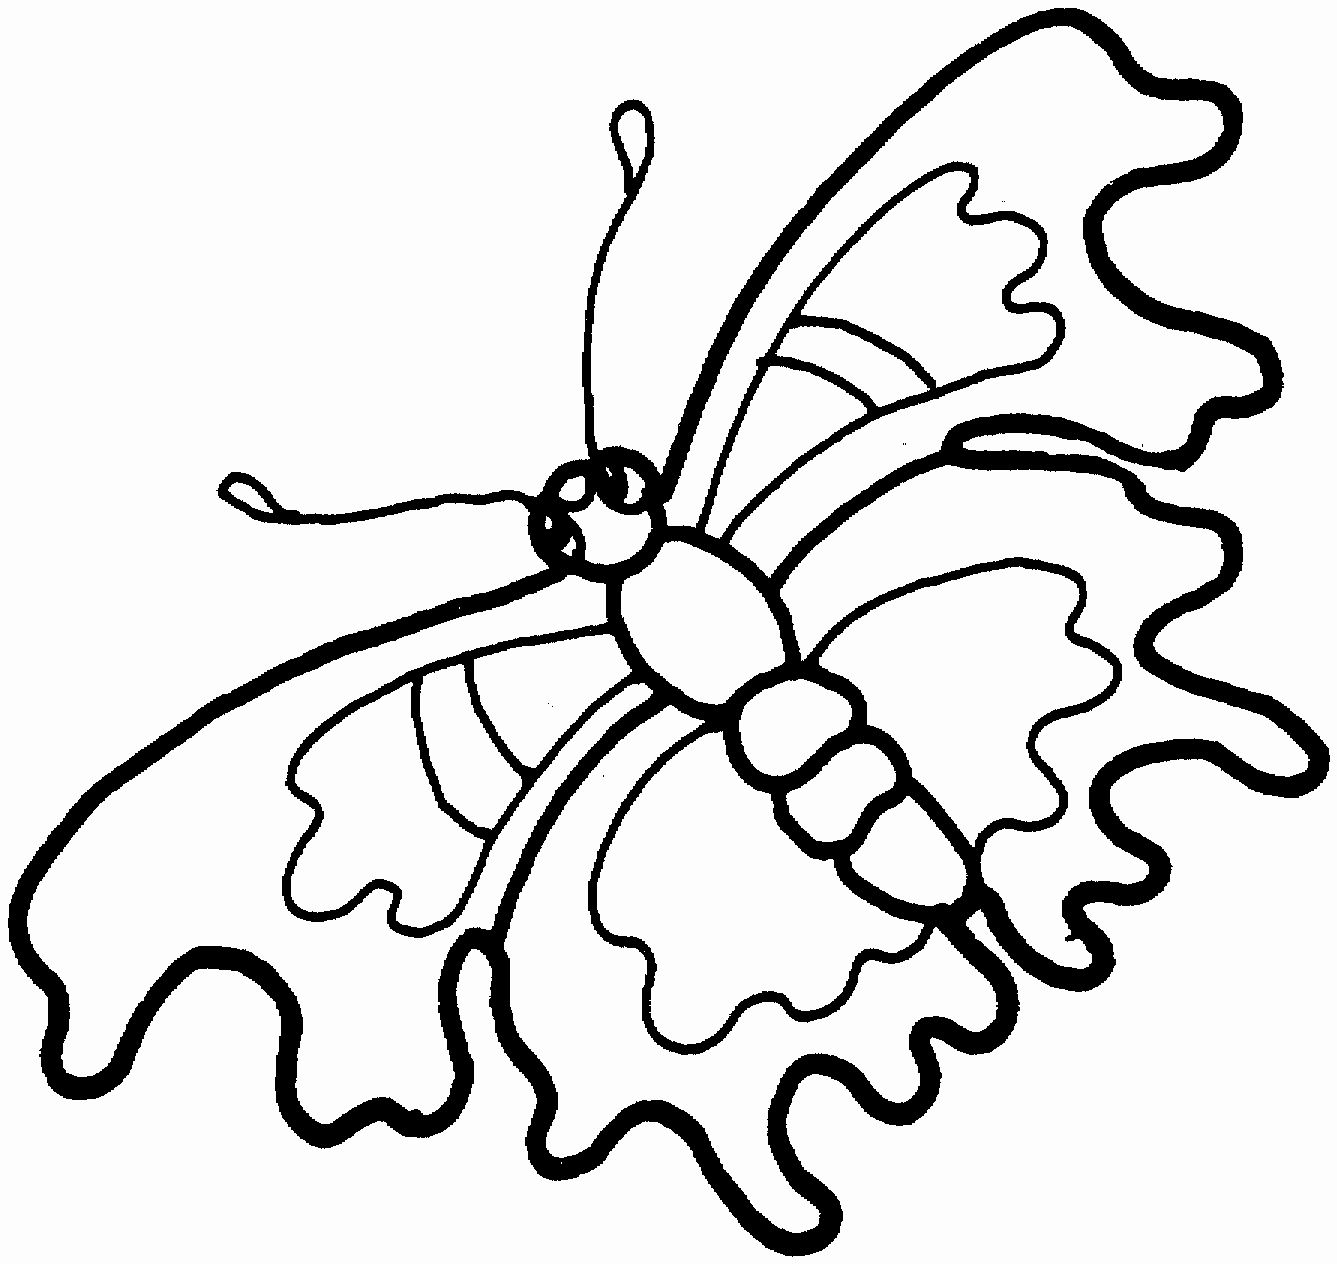 Butterfly Coloring Pages Printable Best Of Free Printable Butterfly Coloring Pages For Kids Butterfly Coloring Page Animal Coloring Pages Coloring Pages [ 1264 x 1337 Pixel ]